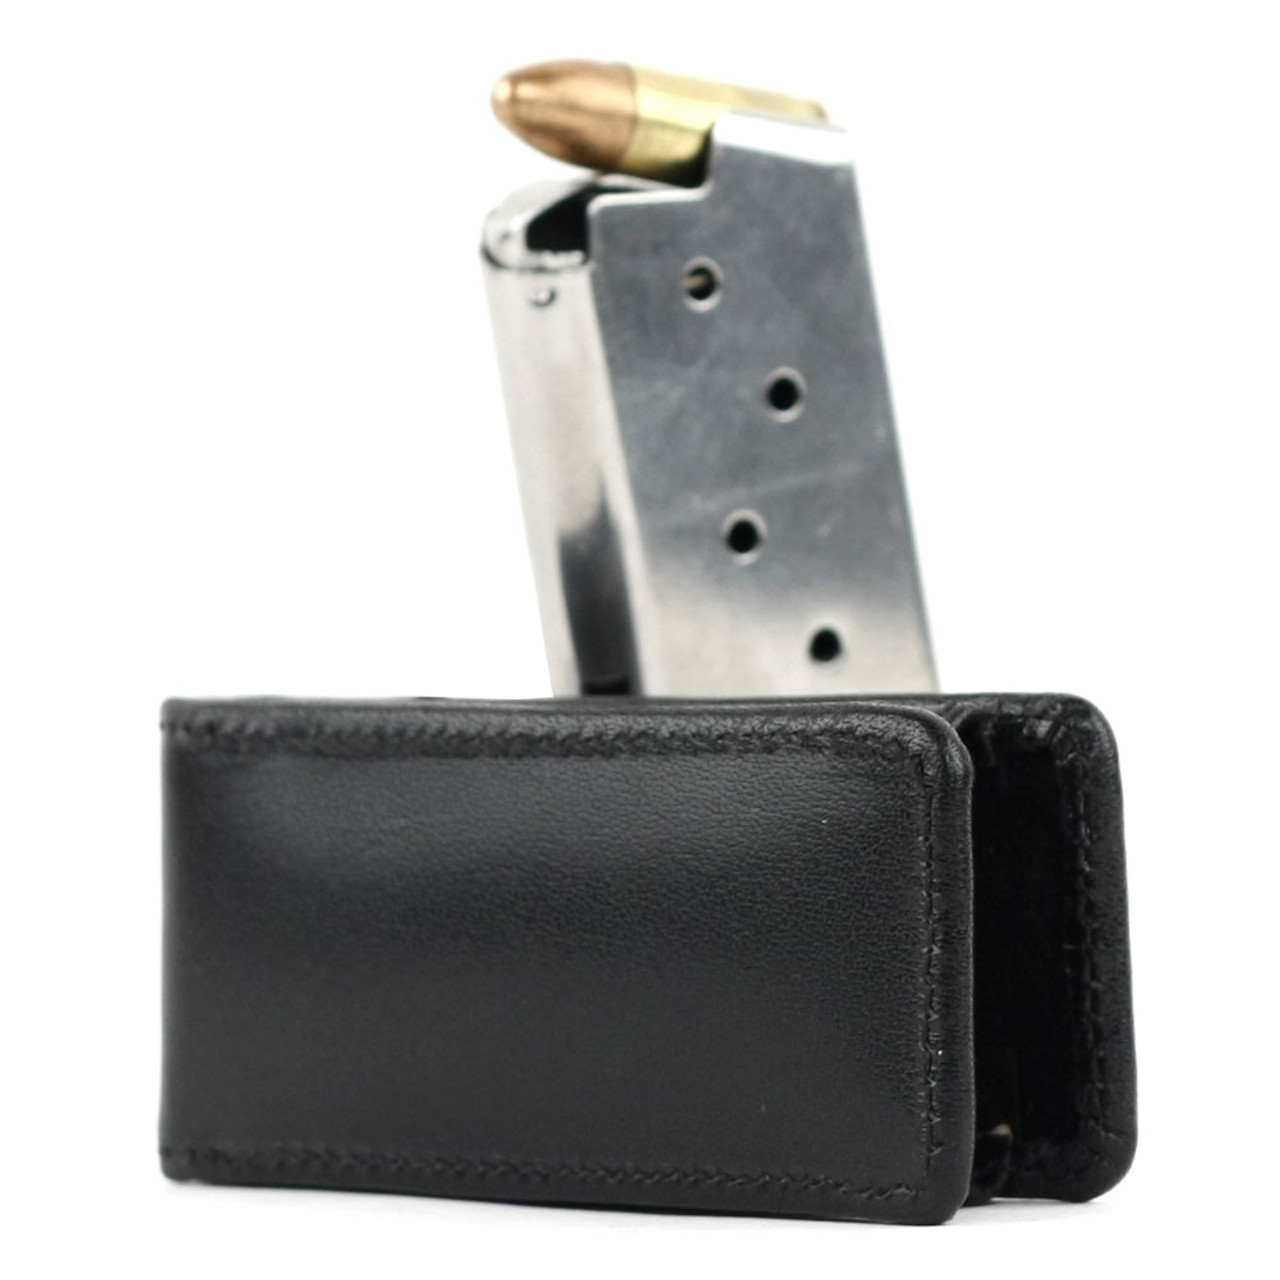 Sig P250 Sub Compact 9mm Magazine Pocket Protector